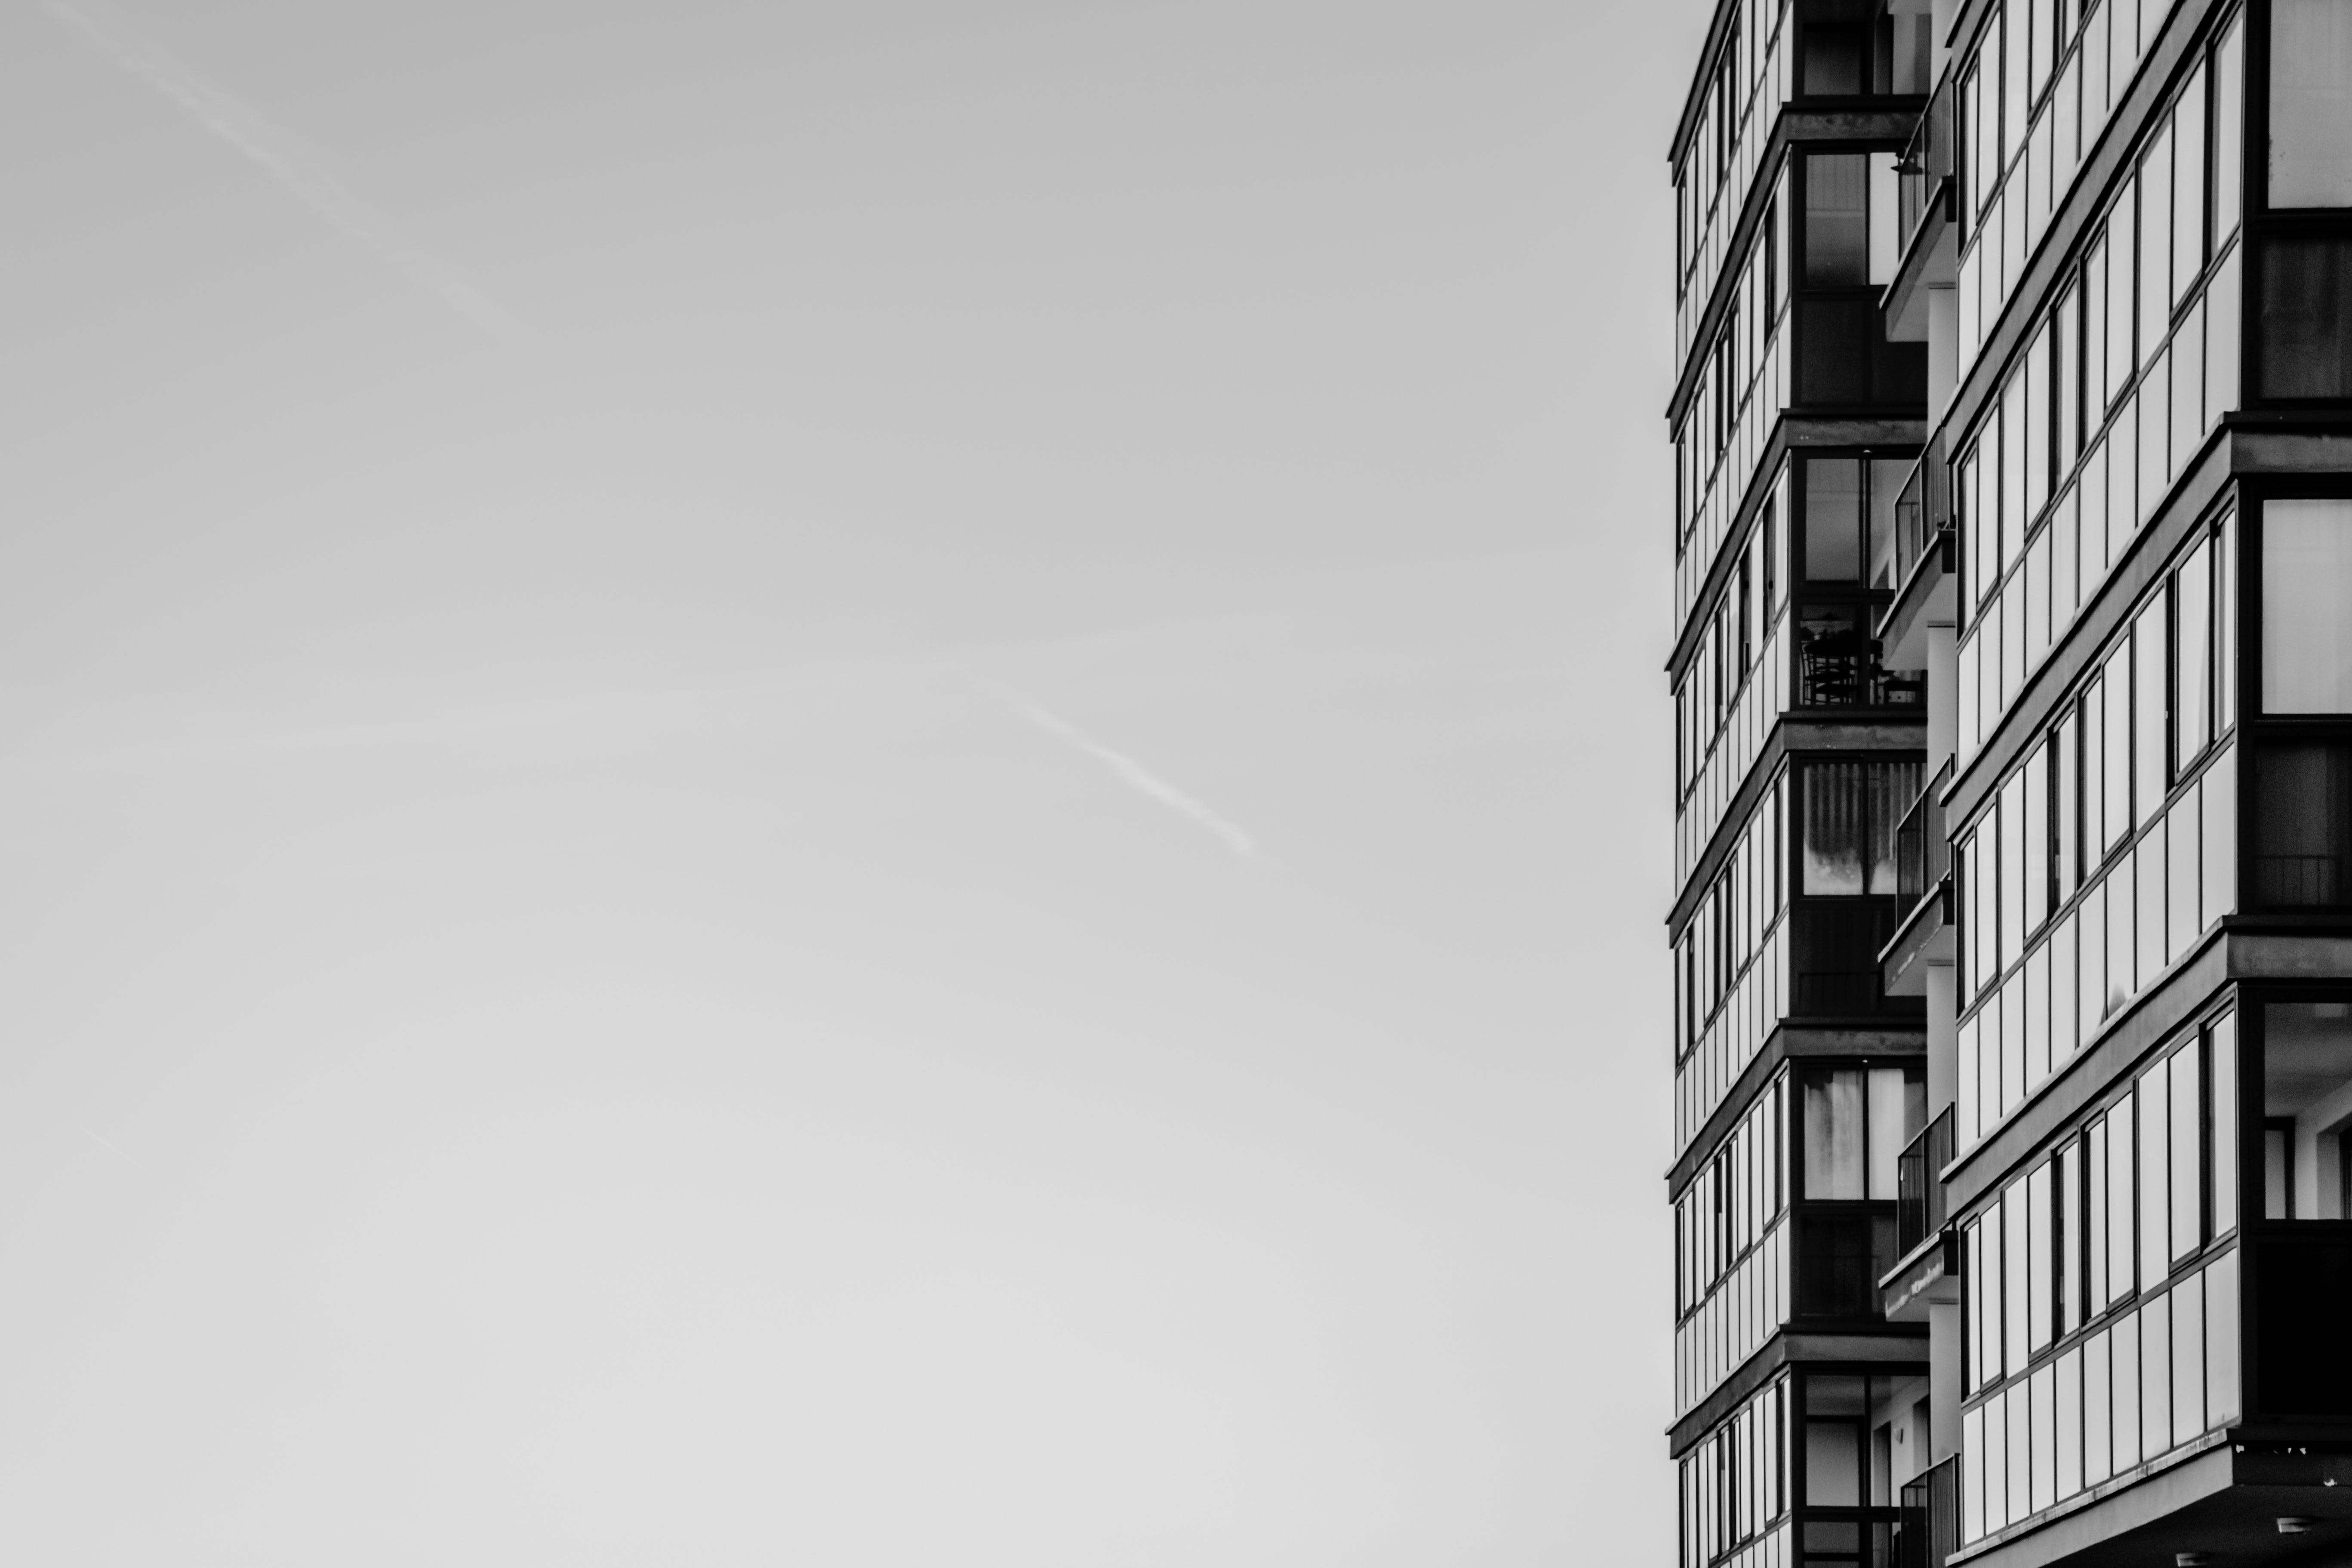 Free stock photo of apartment building, architectural, architectural design, architecture